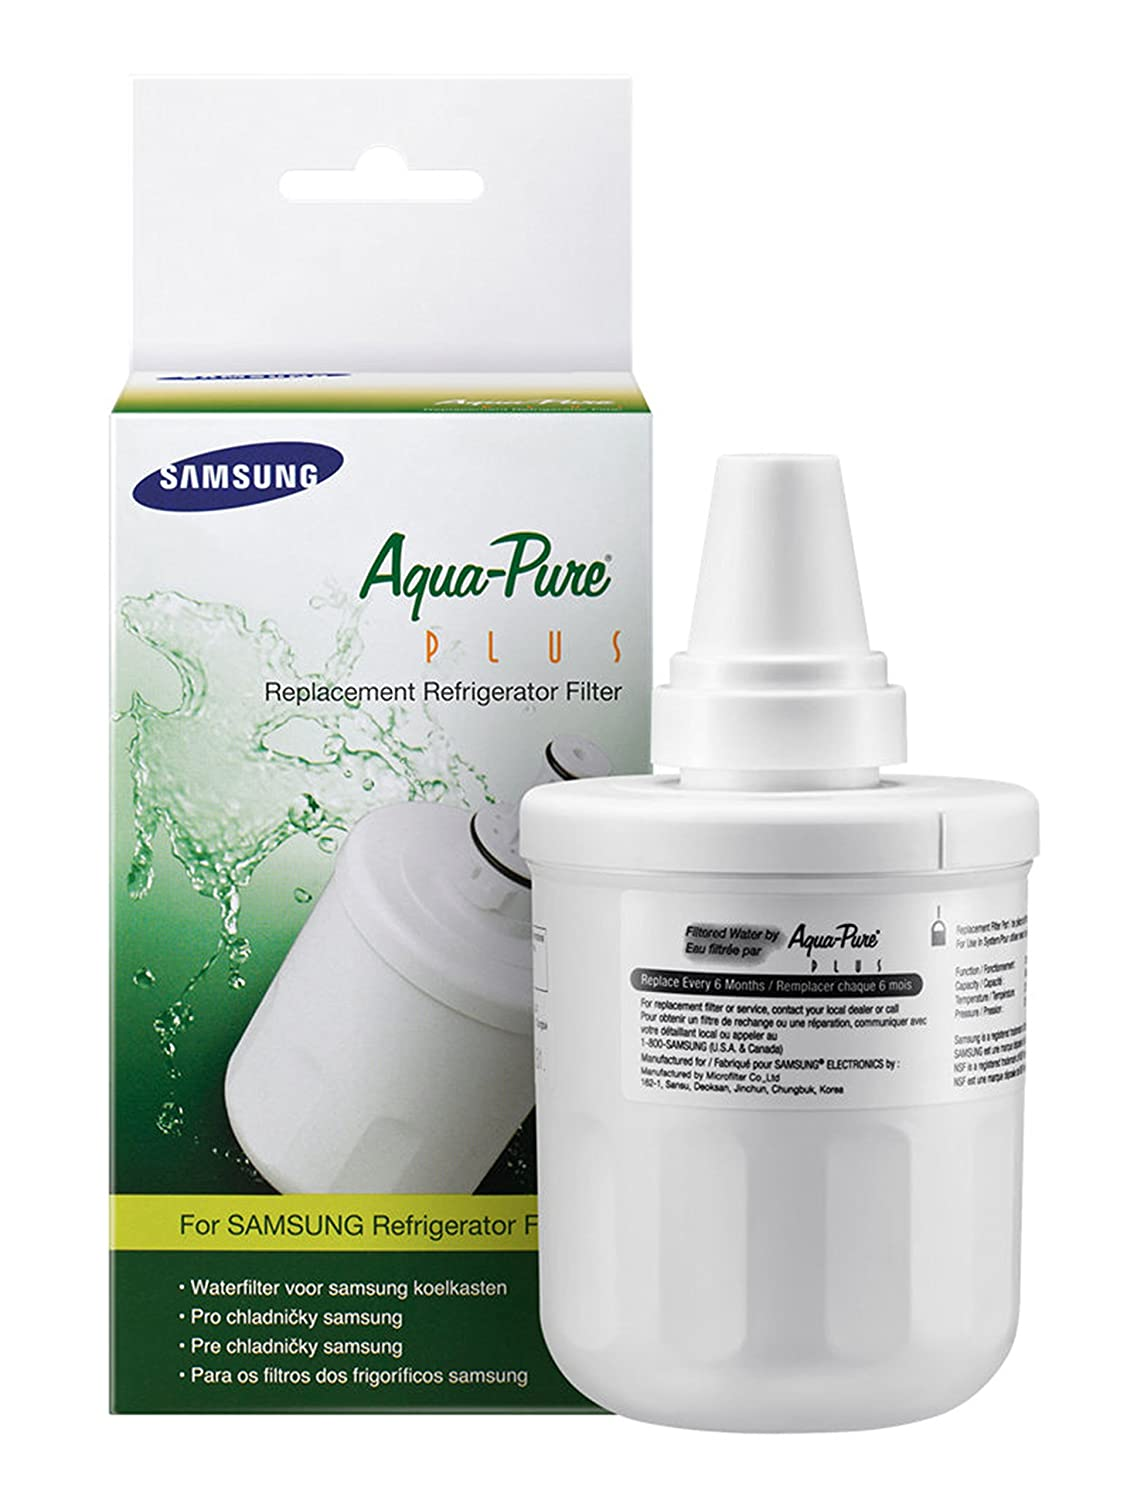 Samsung Products DA29-00003F Aqua-Pure Plus Refrigerator Water Filter 1 Pack